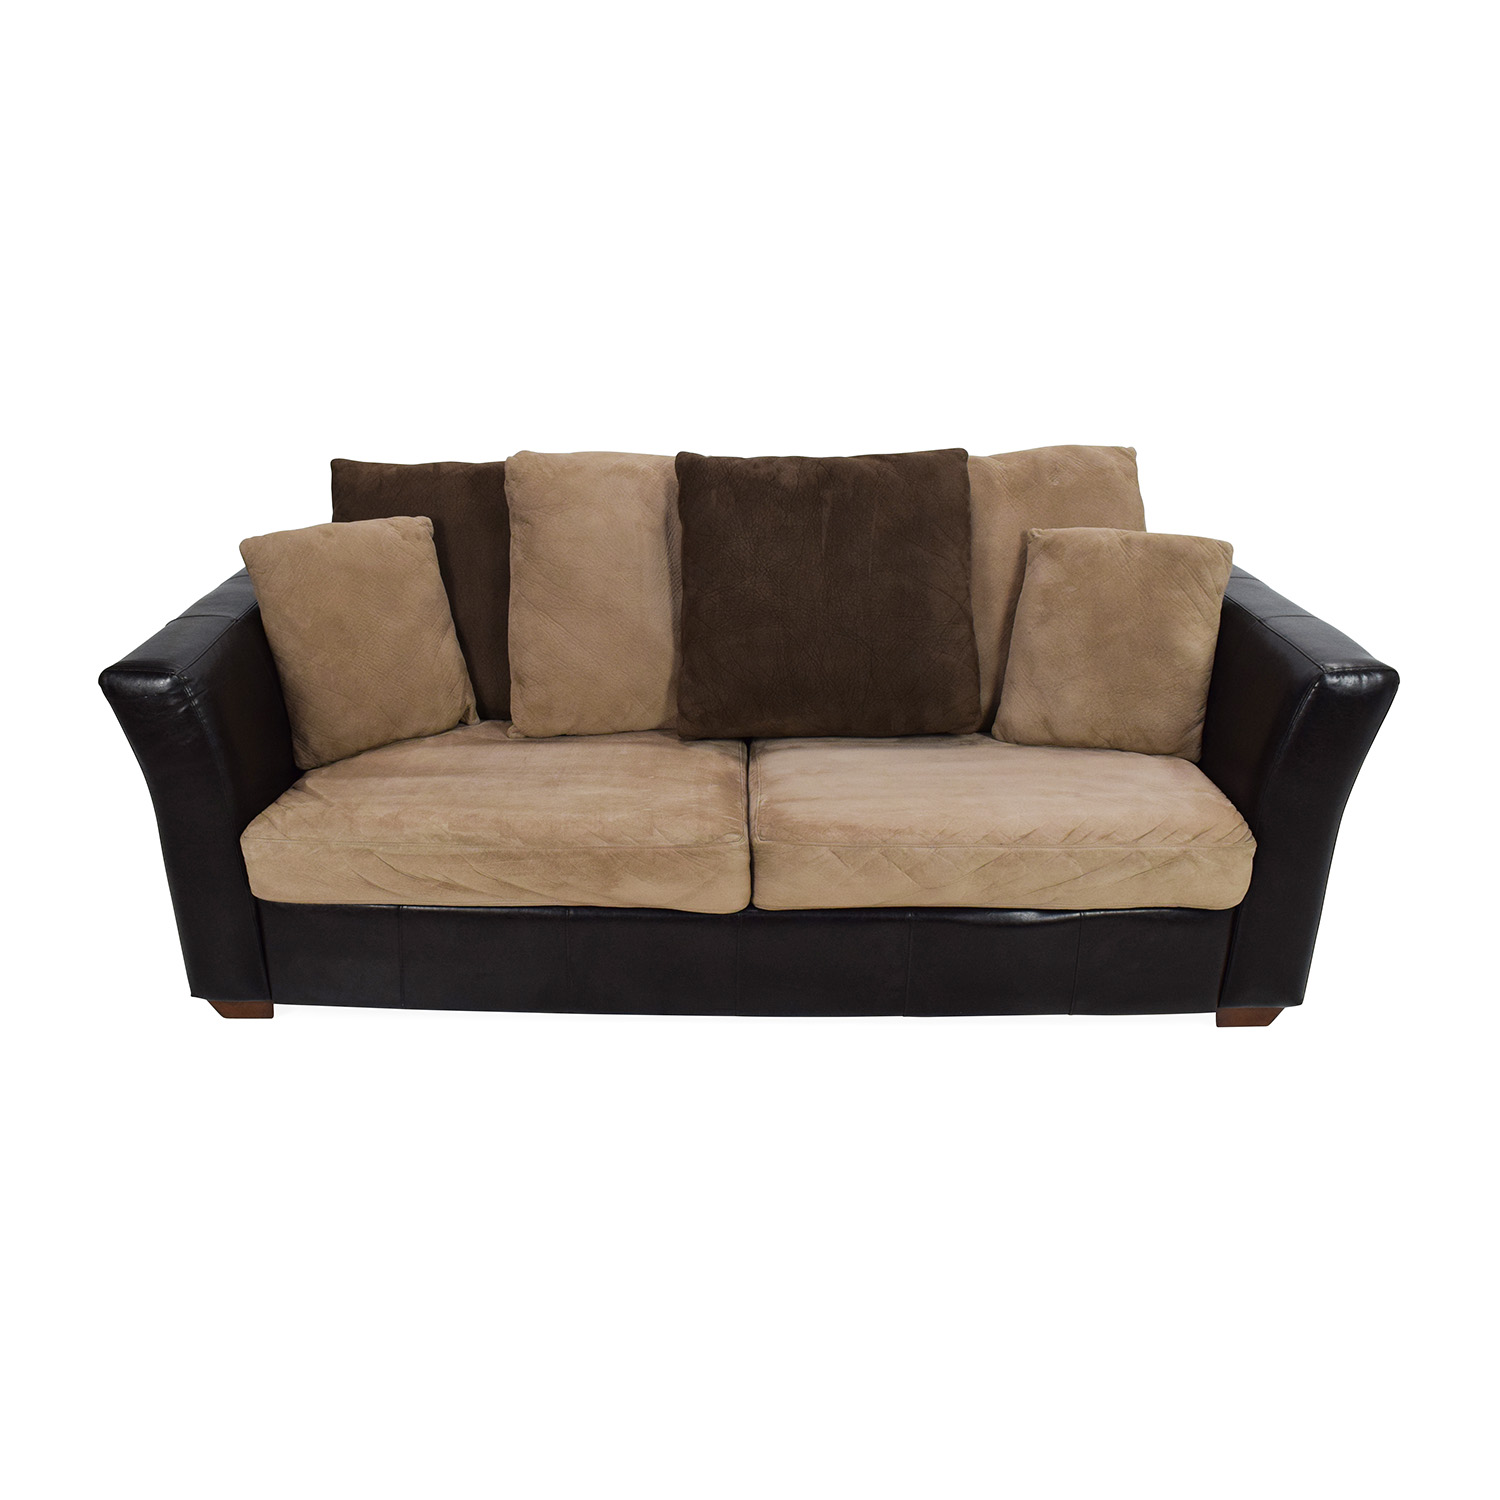 Used sleeper sofas appealing sleeper sofa sectional small for Sectional sleeper sofa nj